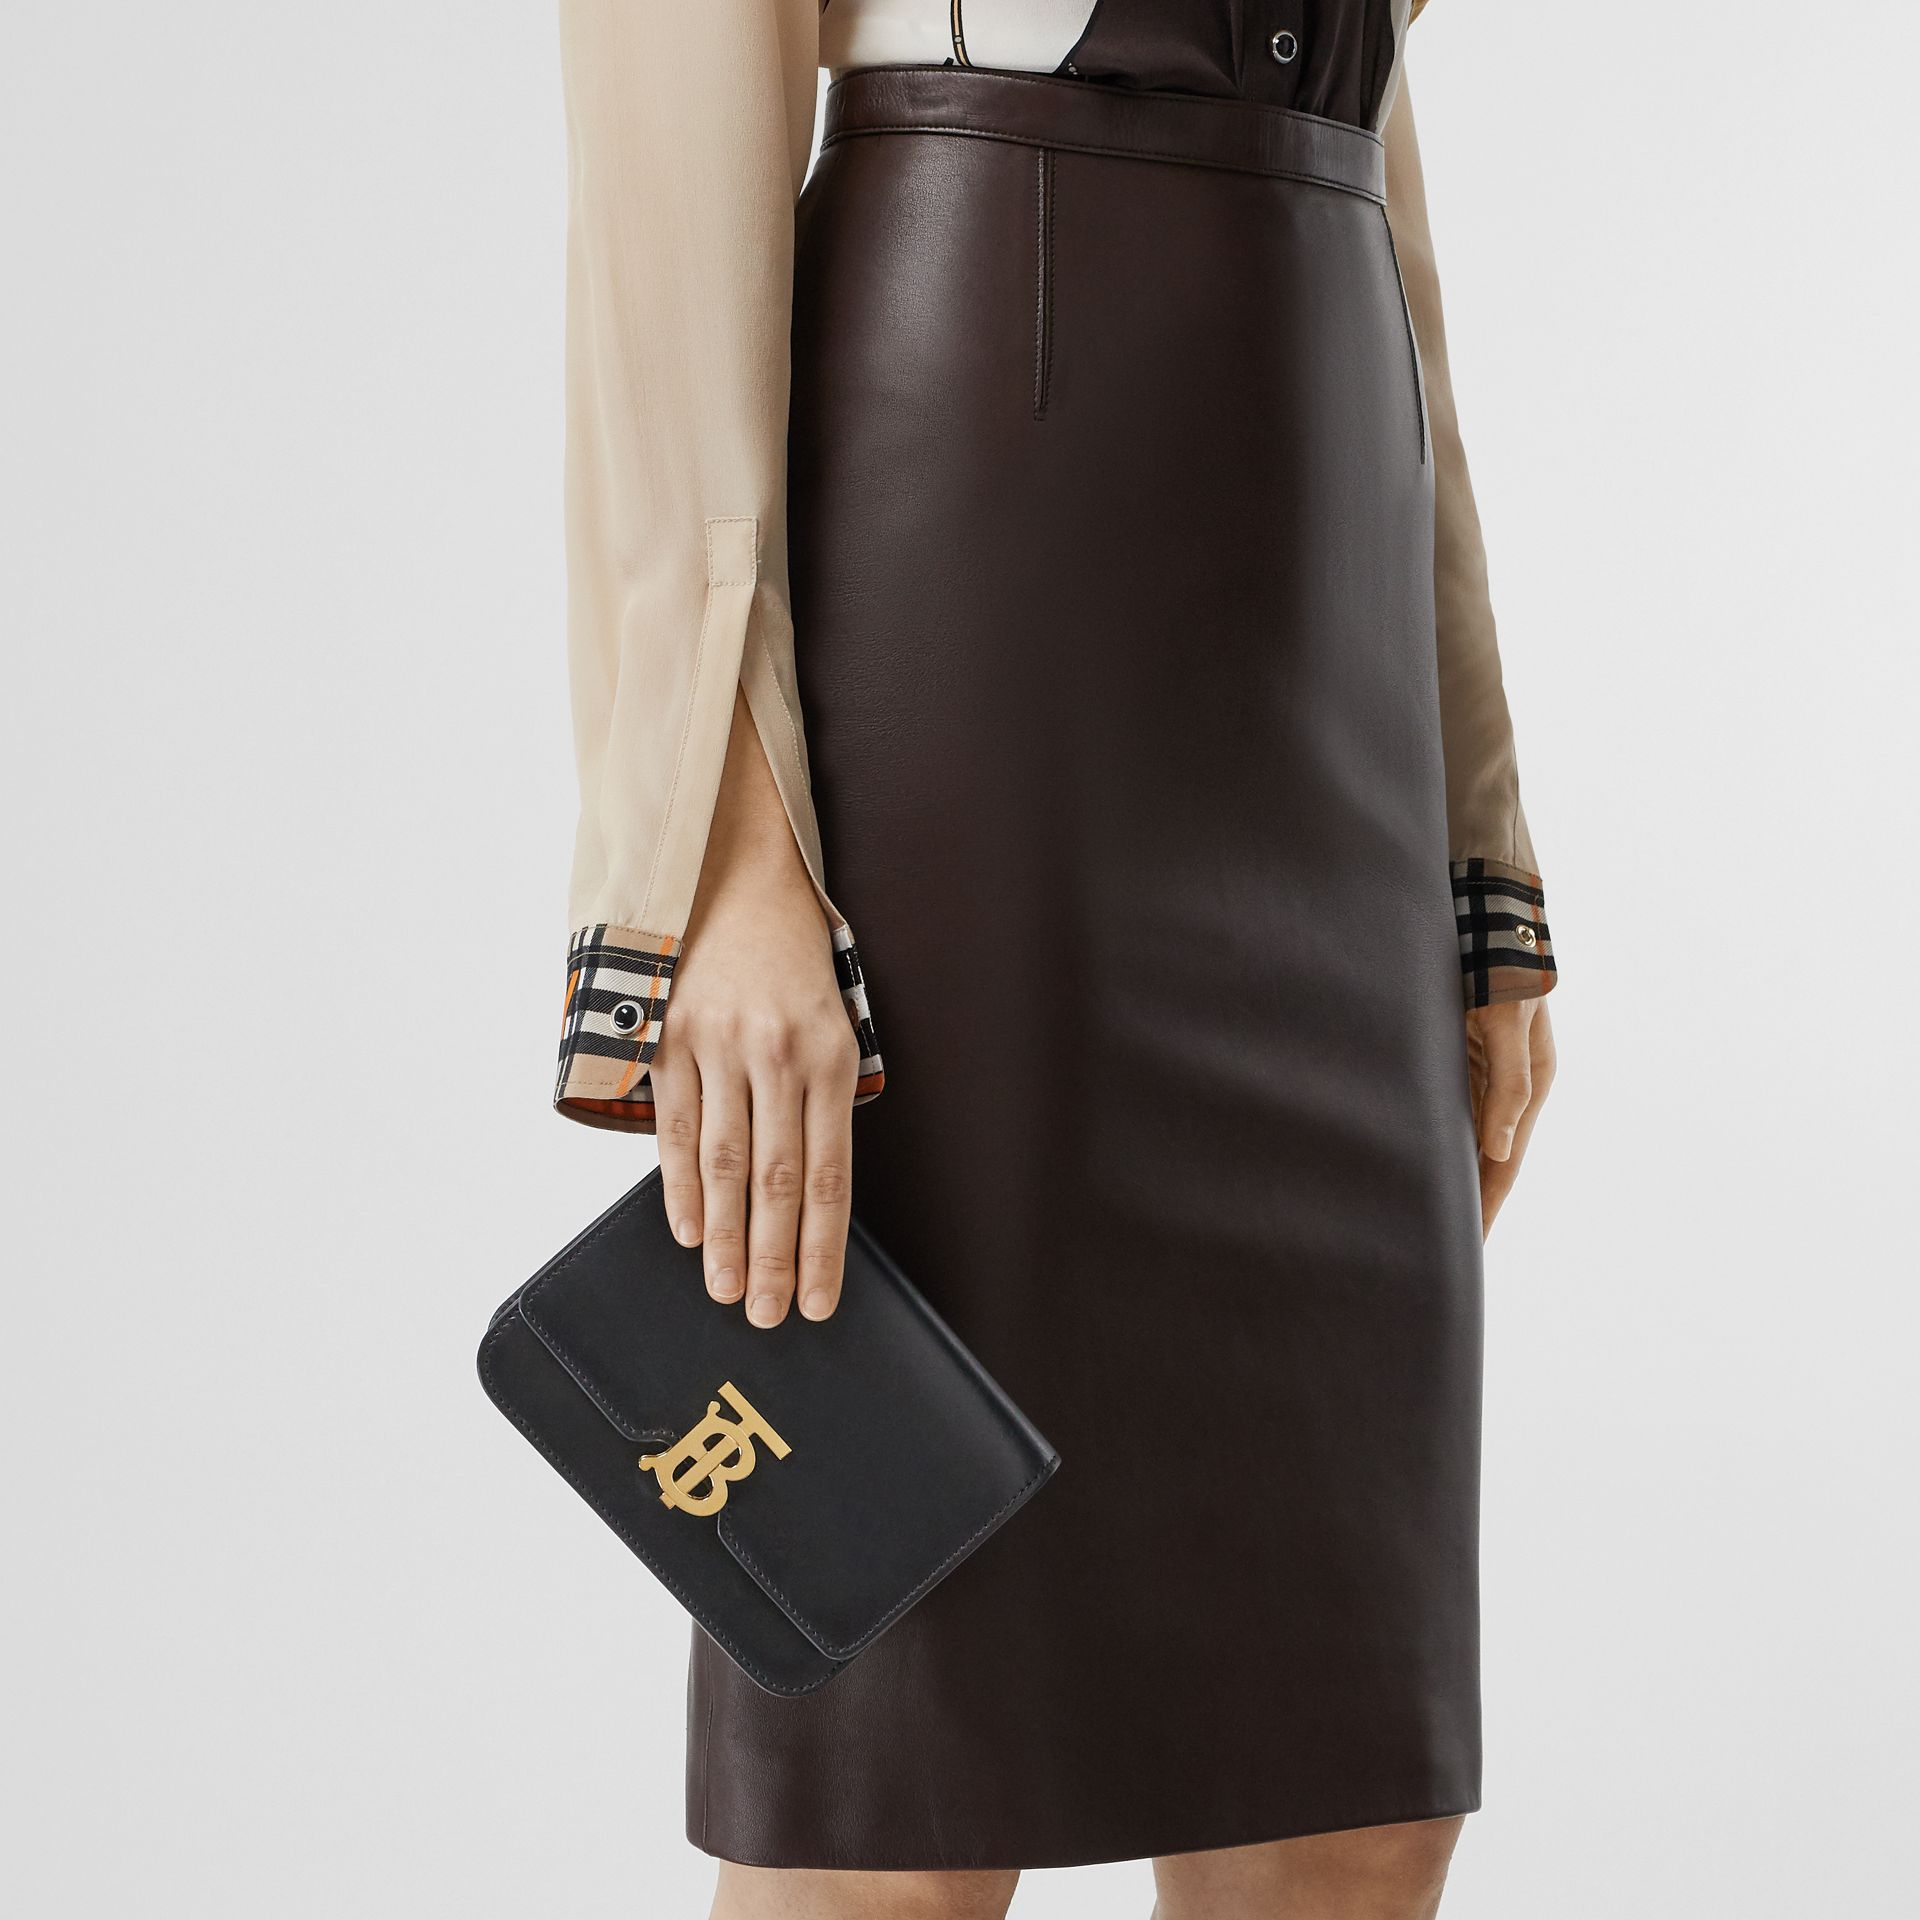 Belted Leather TB Bag in Black - Women | Burberry - gallery image 3